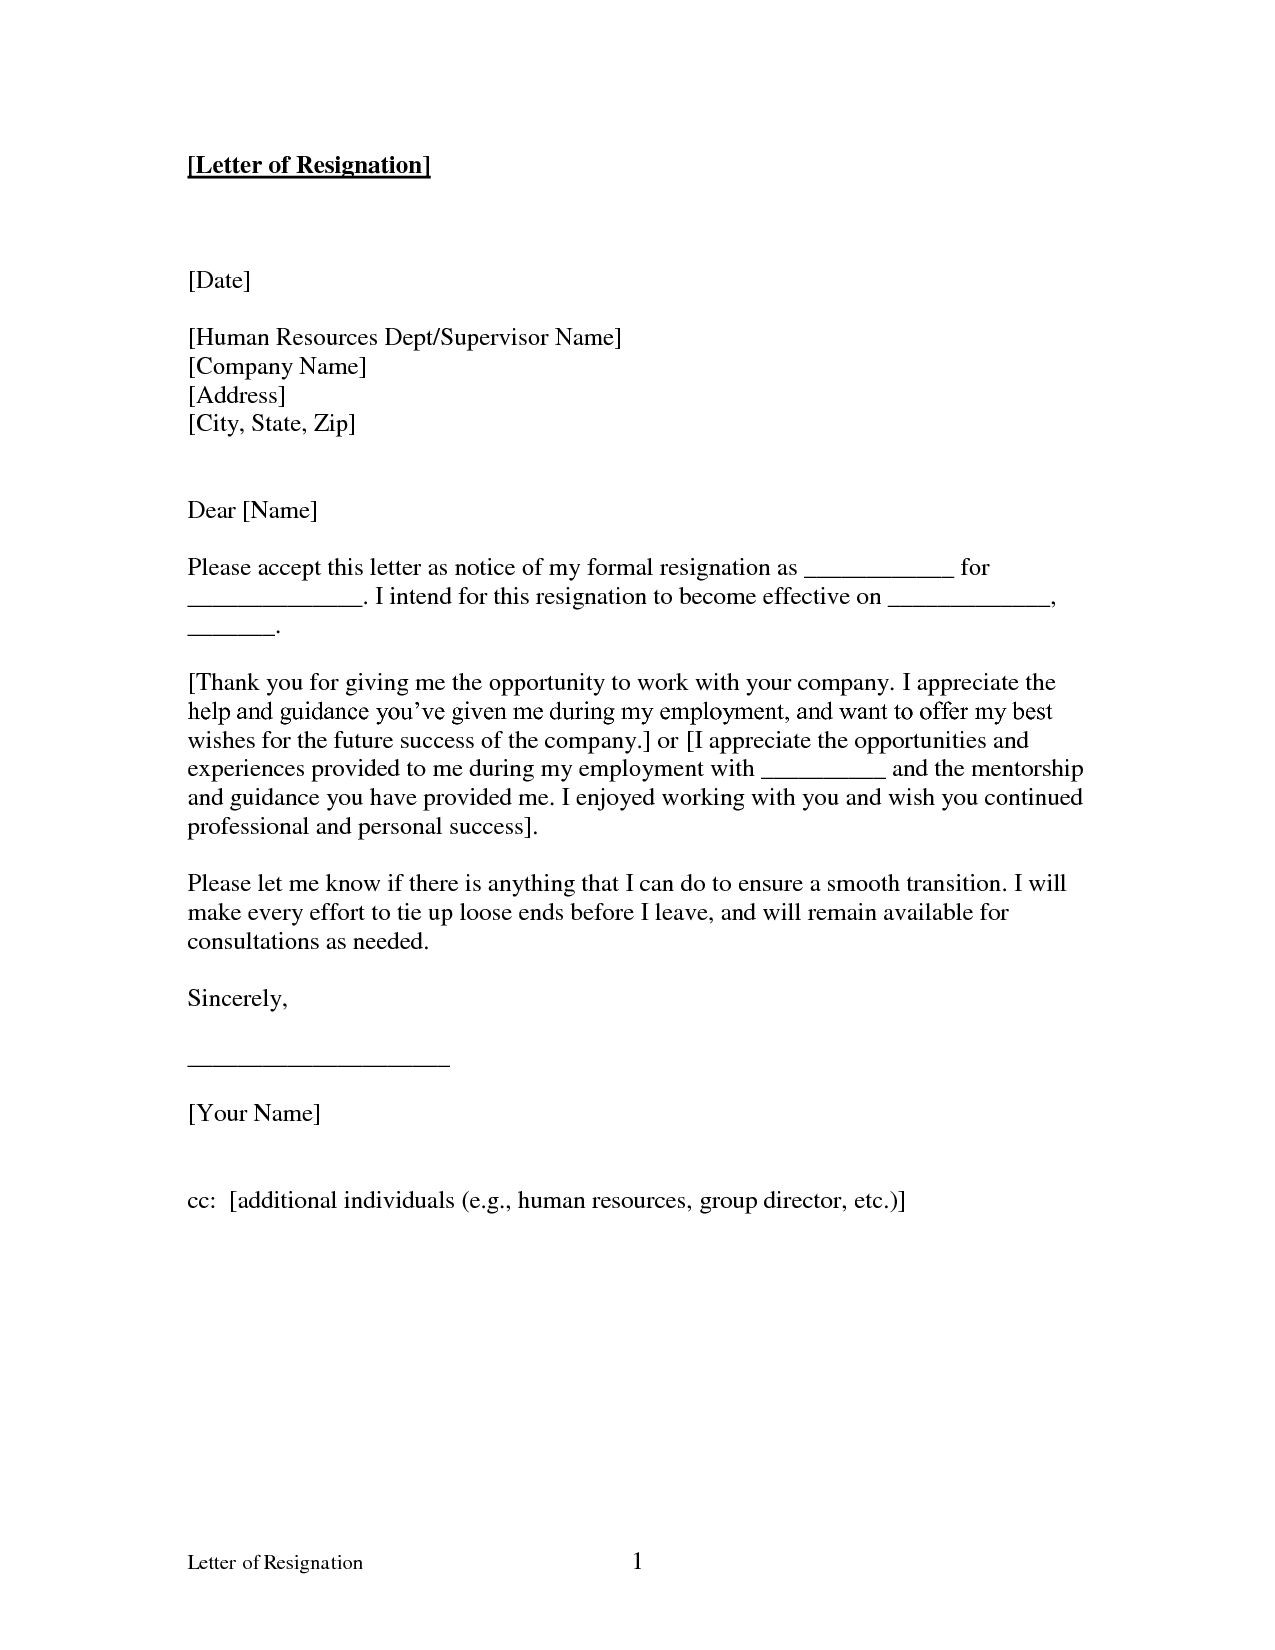 printable sample letter of resignation form laywers template